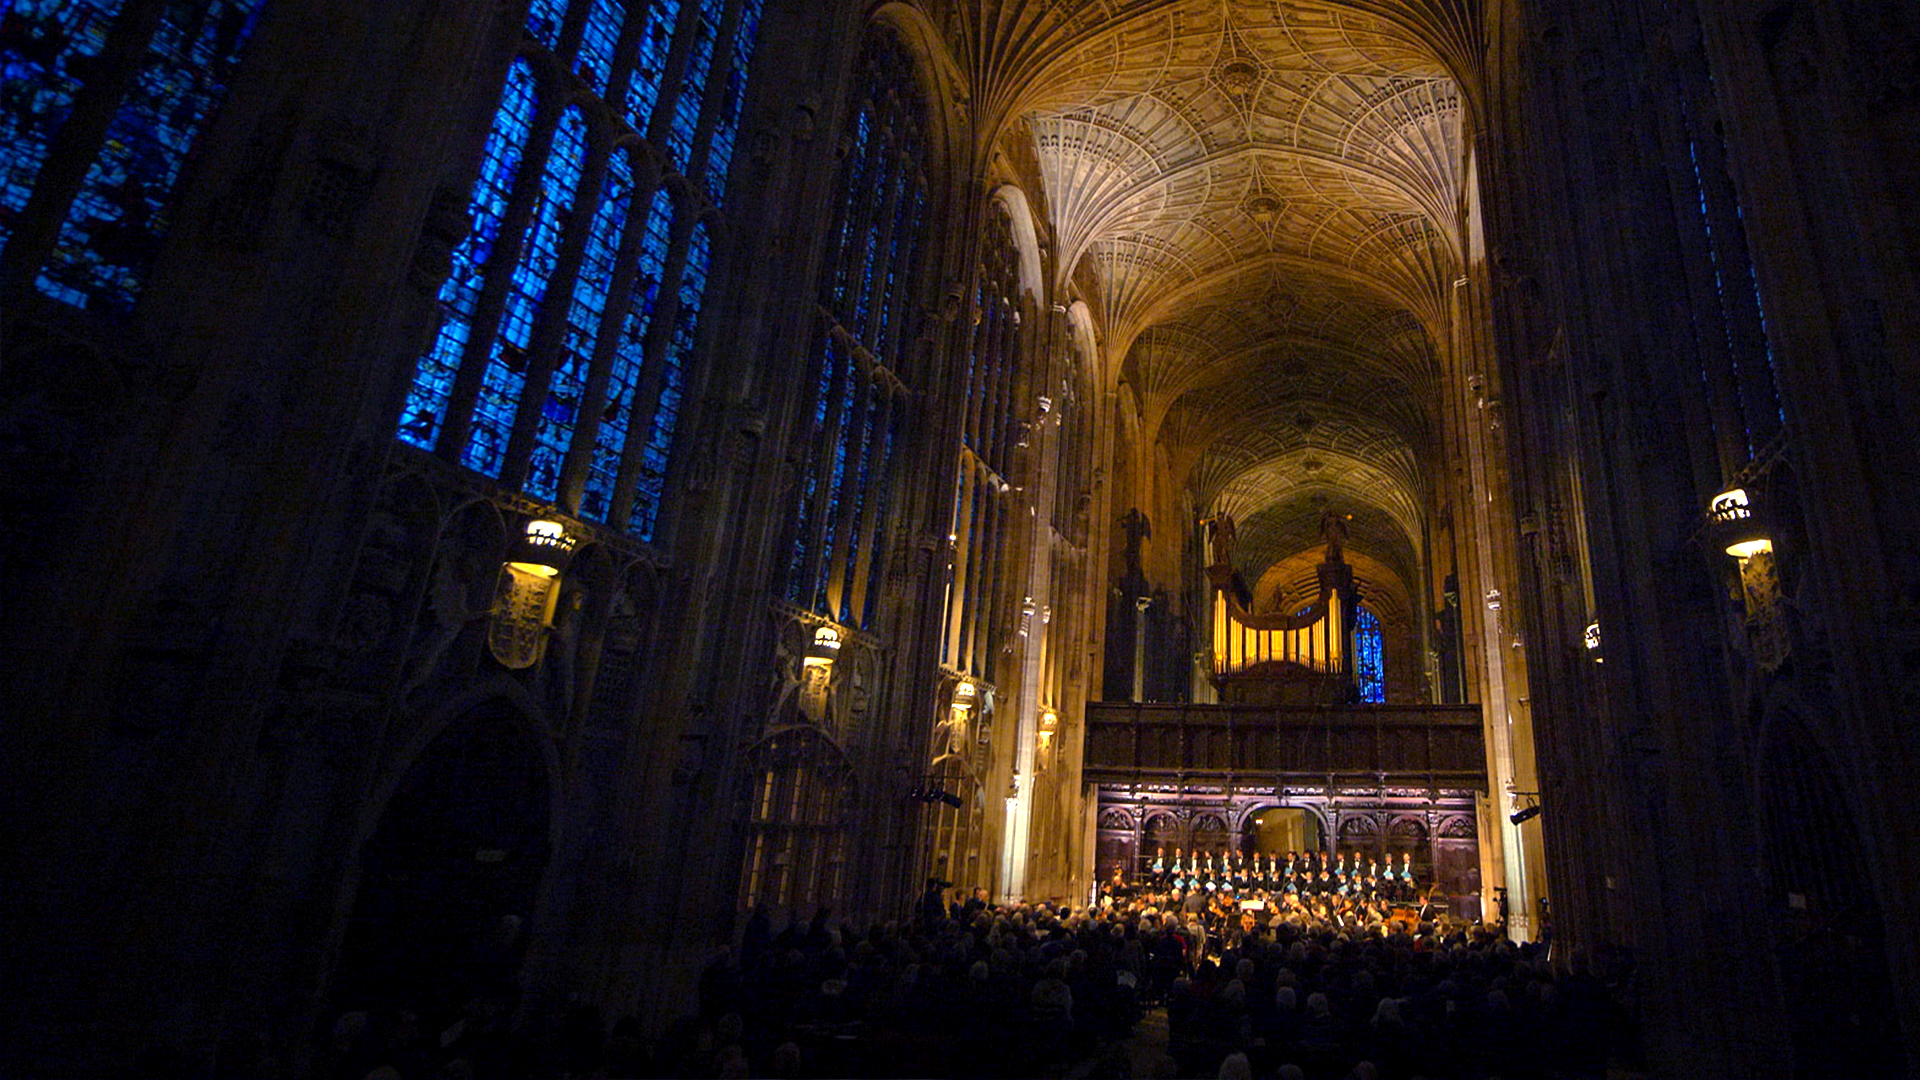 King's College Chapel Bach St Matthew Passion concert